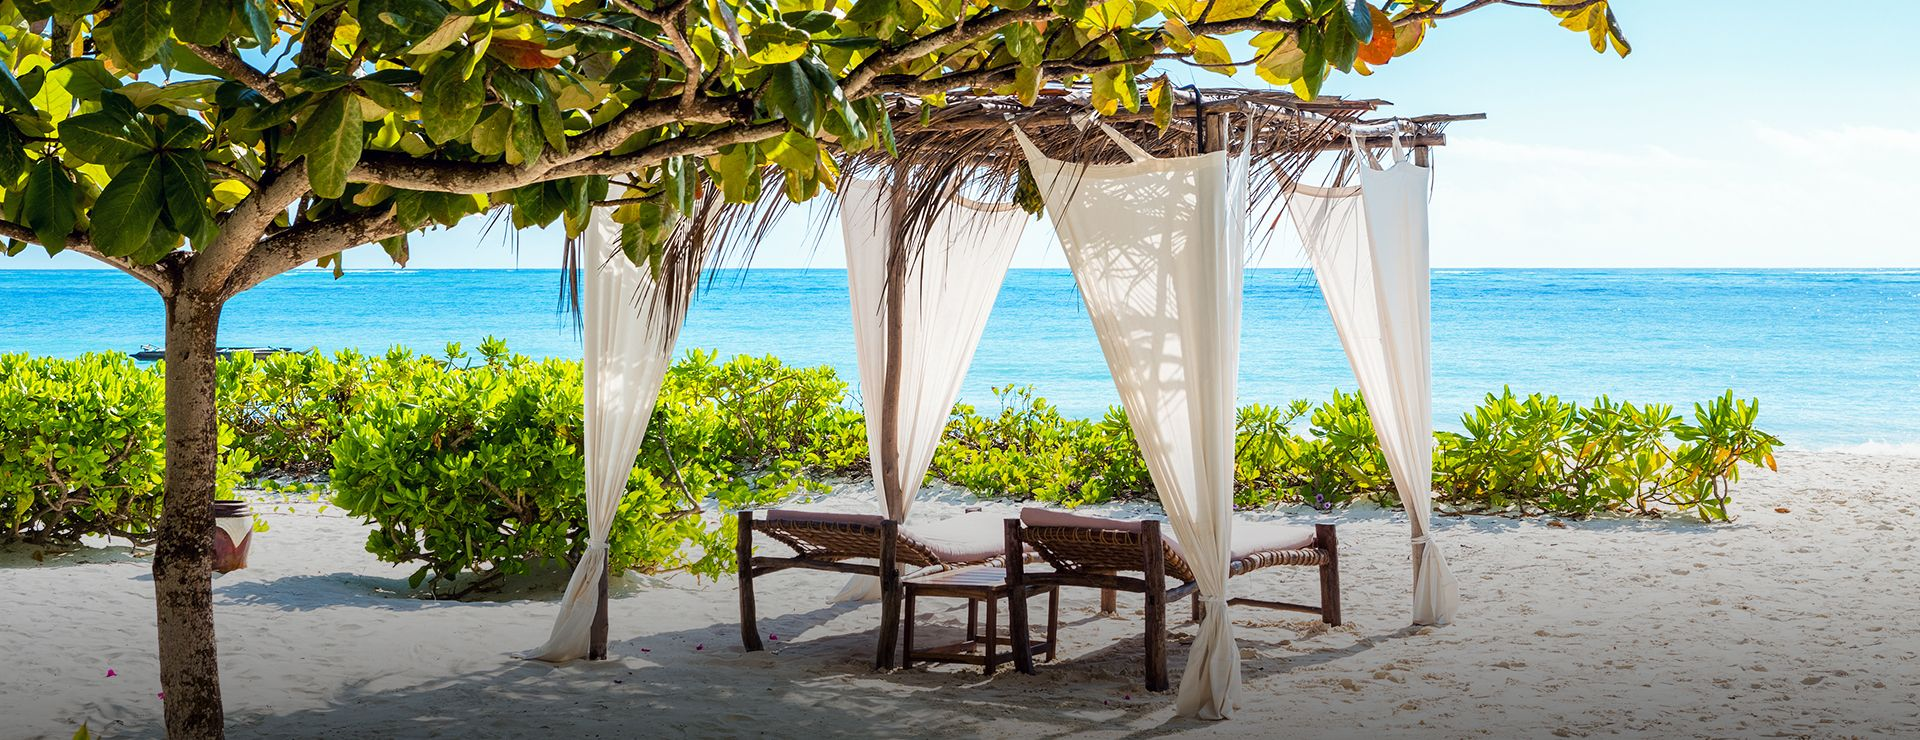 Zanzibar Holiday Packages Best Holiday Deals Holiday Factory